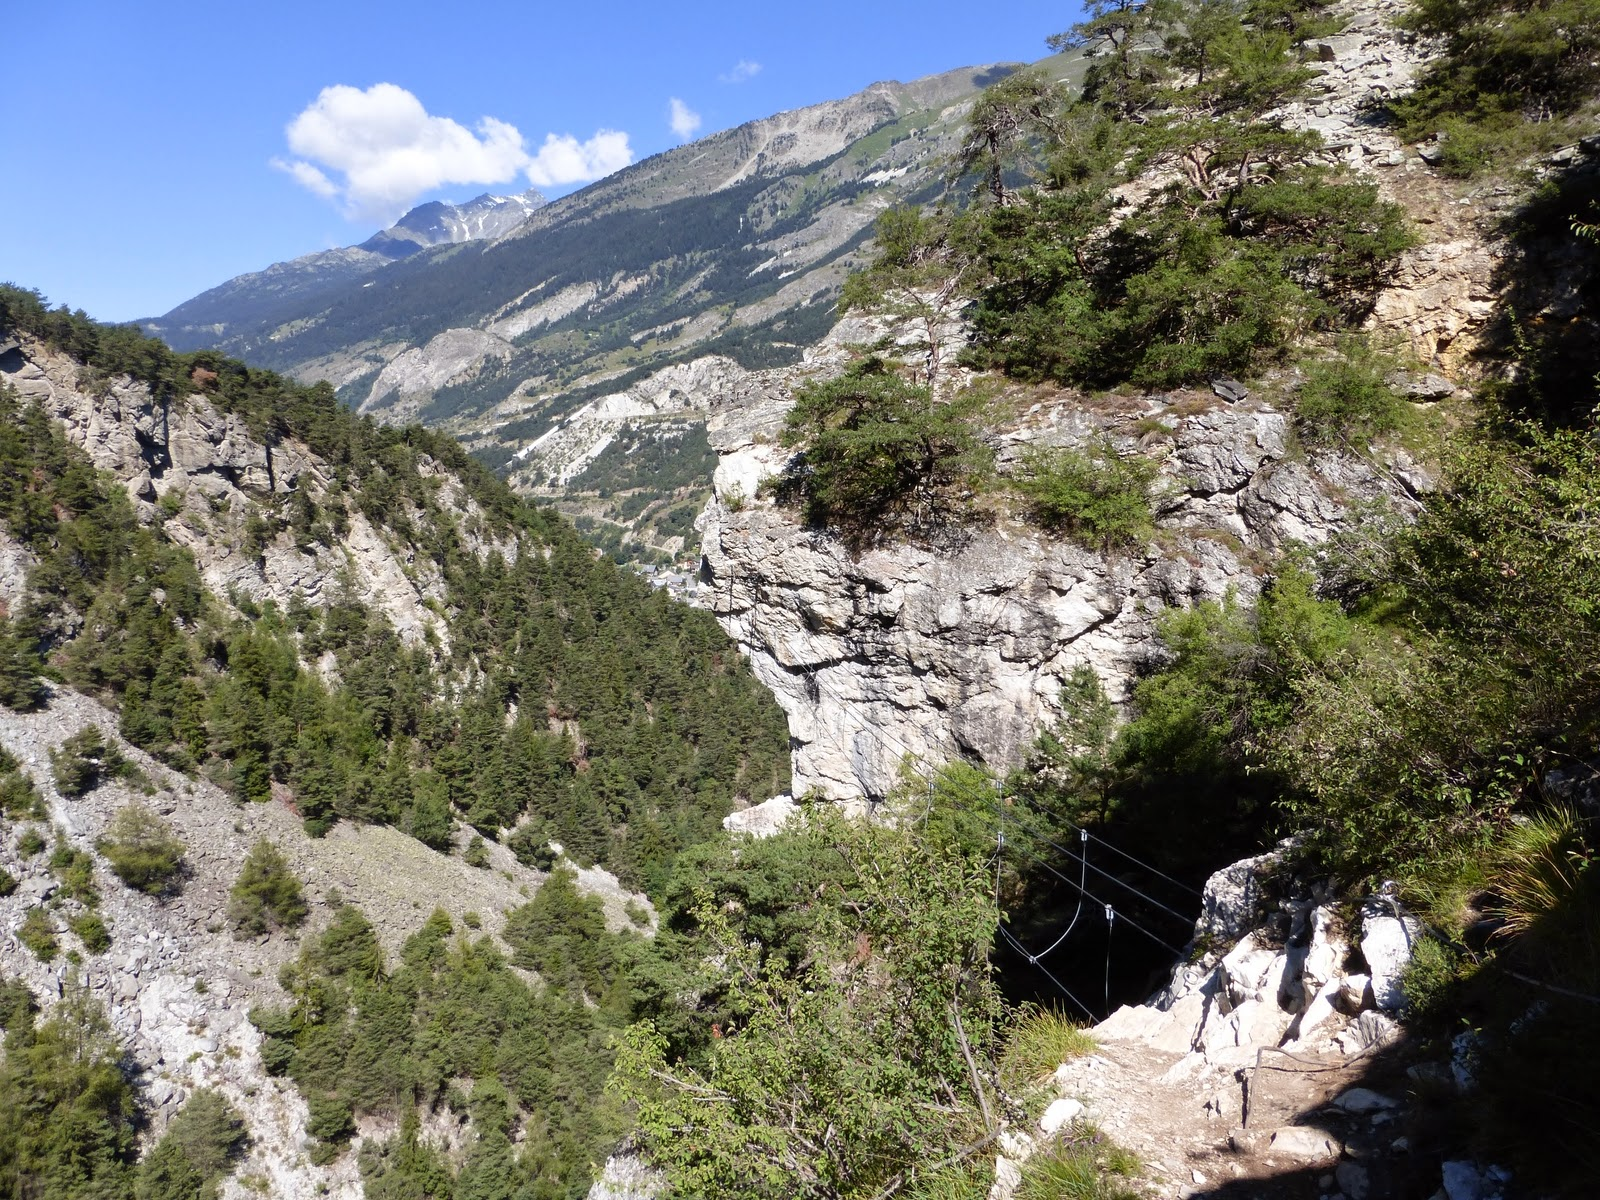 Via Ferrata du Diable (Les Rois Mages)